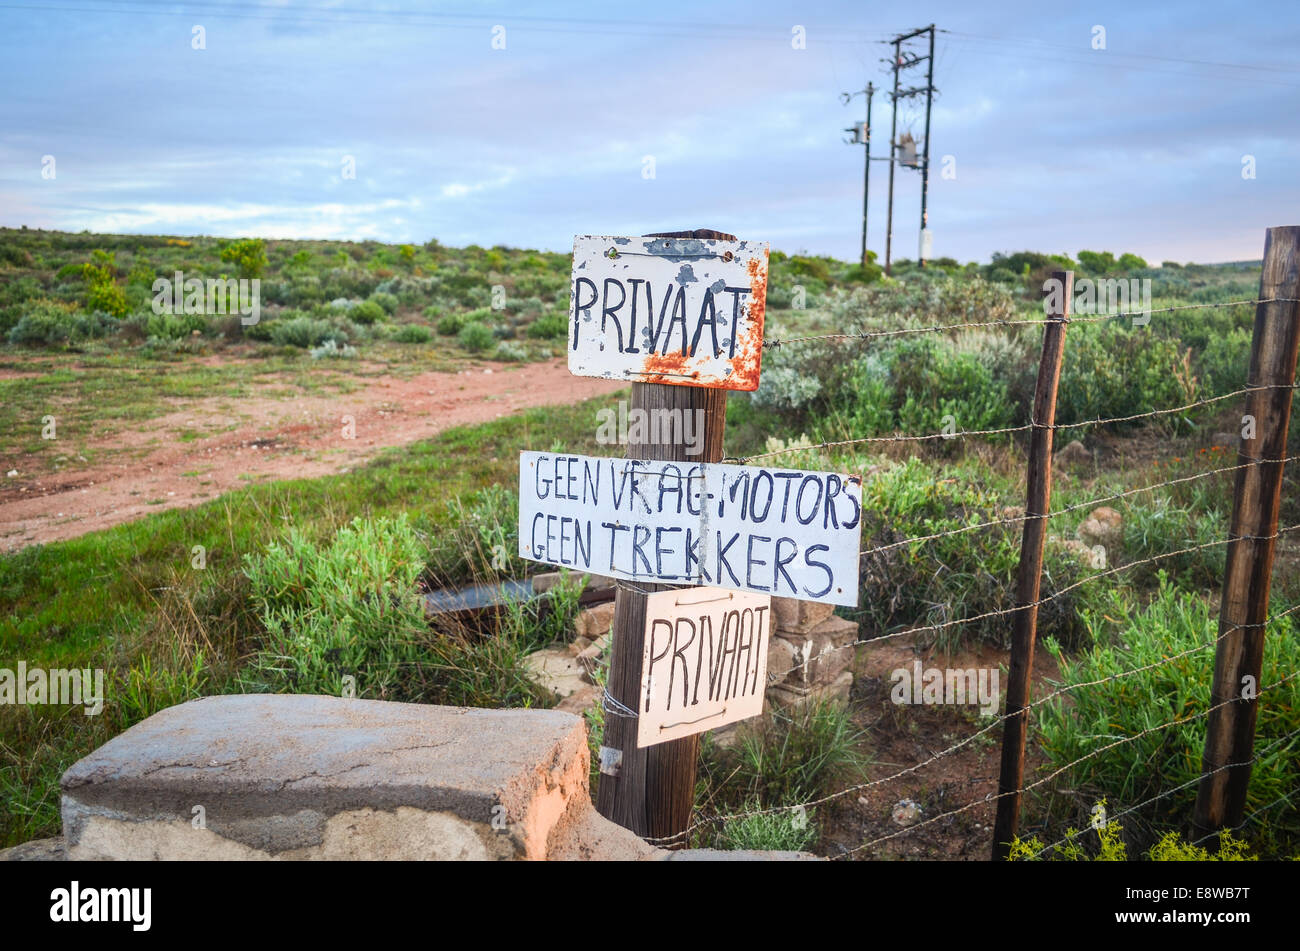 Signs of a private property in Afrikaans on a fence in South Africa - Stock Image